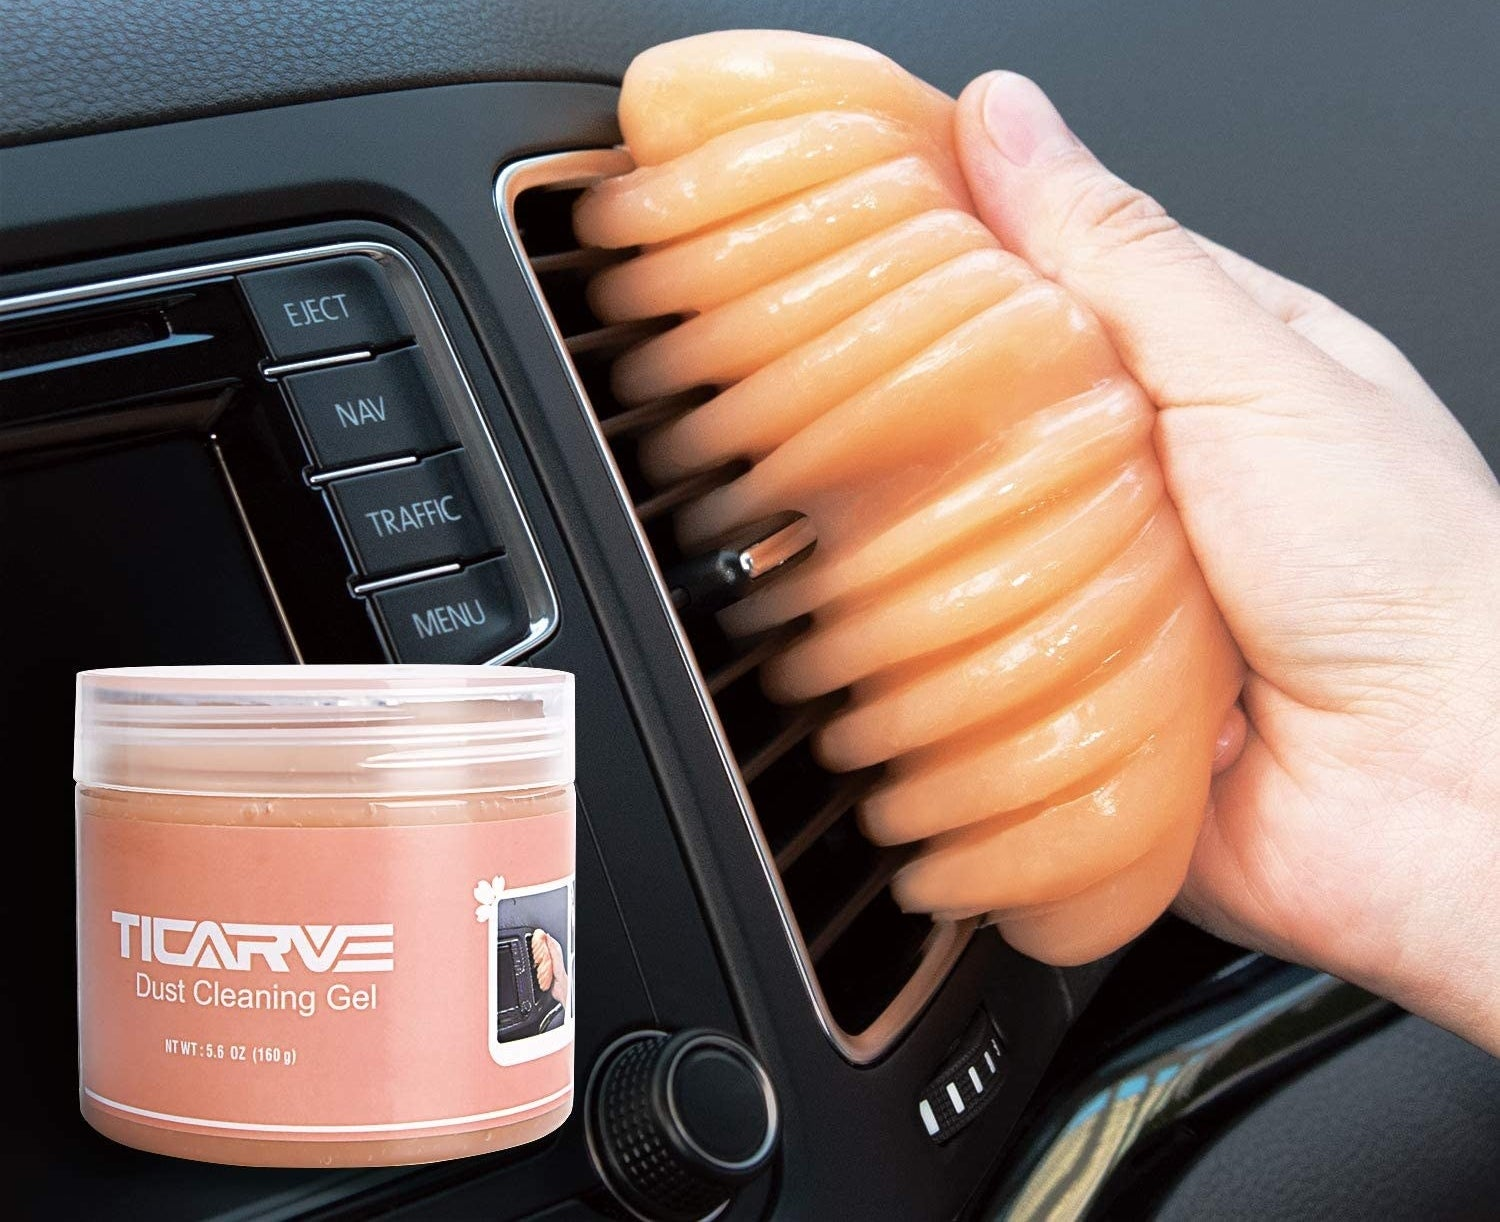 The TICARVE Dust Cleaning Gel removing dust from a car's air vent.